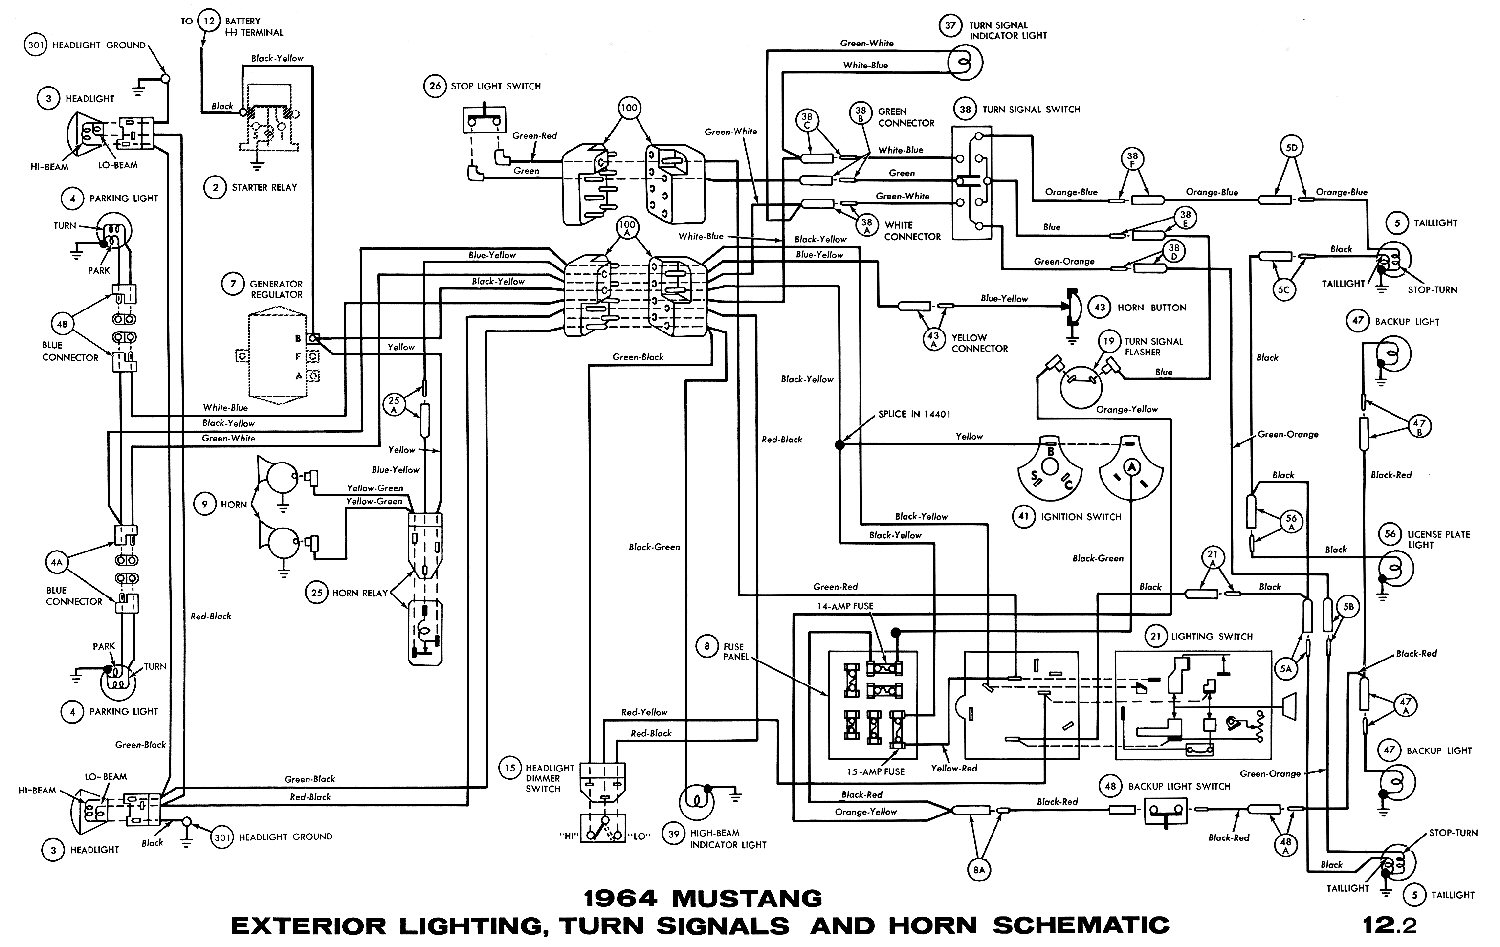 1964i 1964 mustang wiring diagrams average joe restoration 1966 mustang fog light wiring diagram at soozxer.org